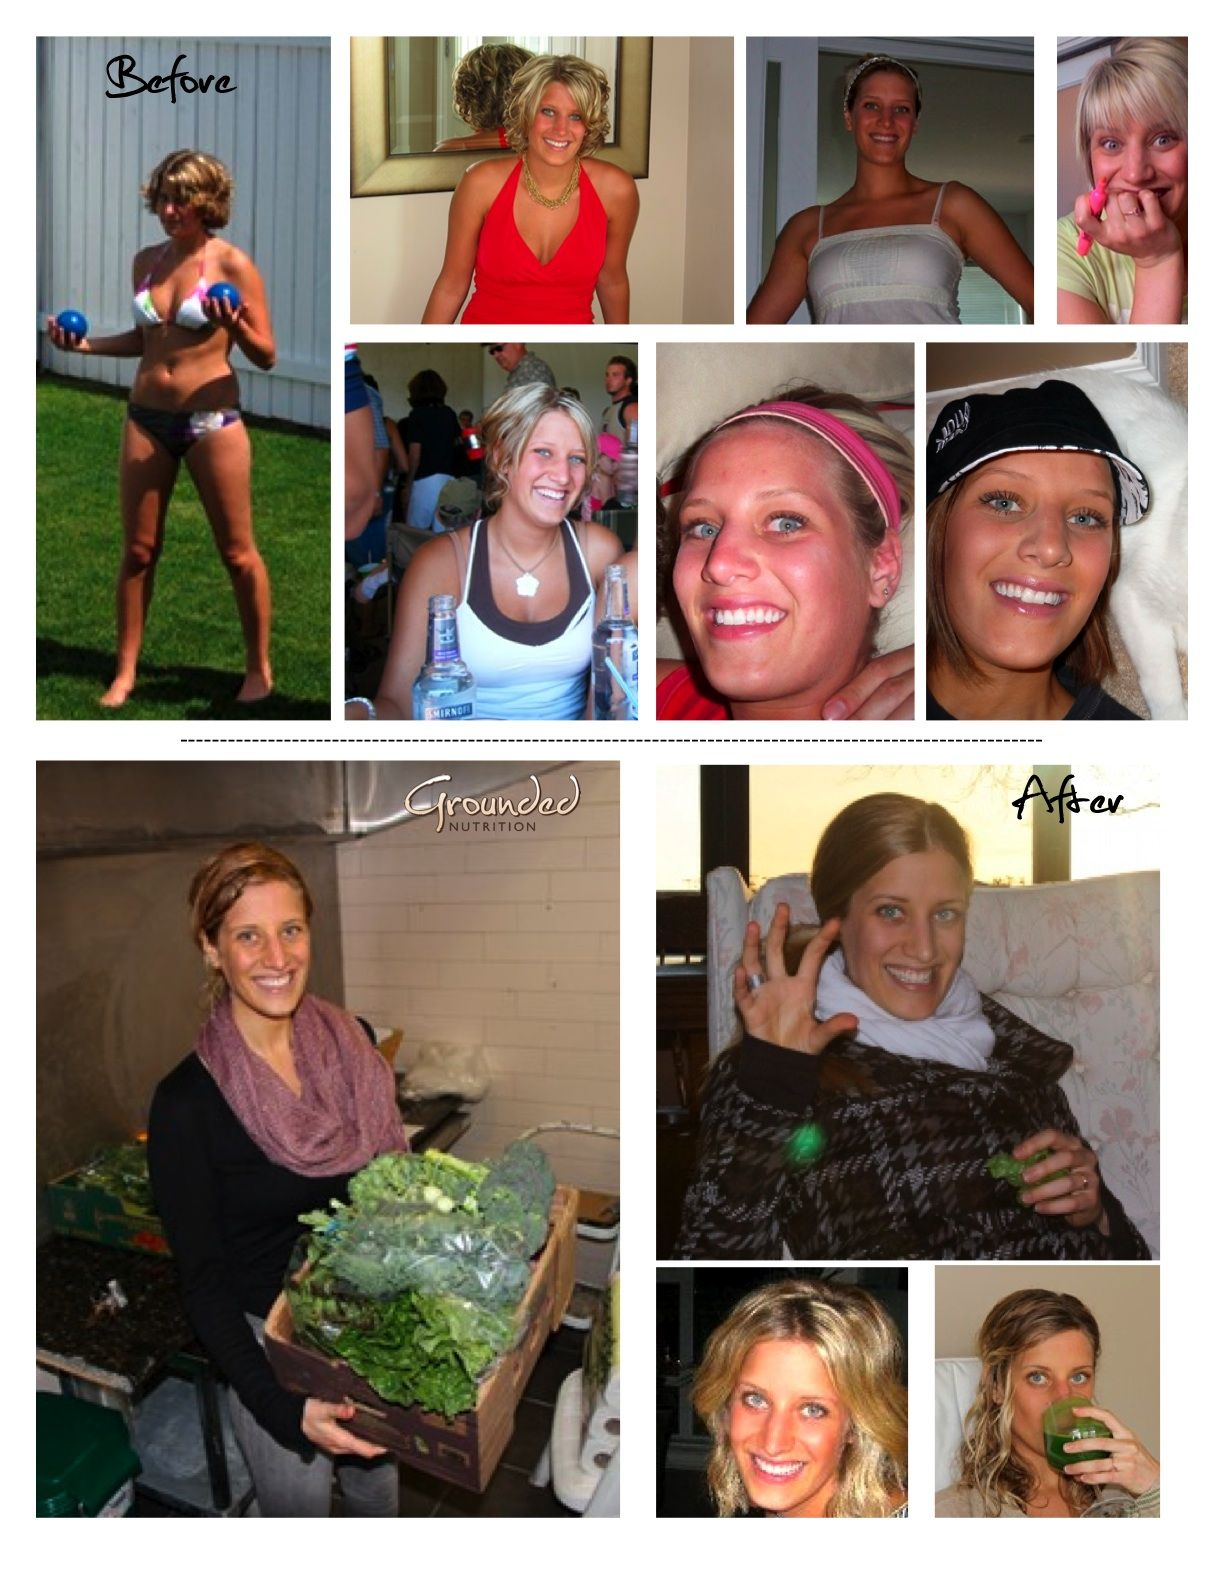 LOW FAT RAW VEGAN BEFORE AND AFTER WHITNEY.  I have been coaching women for the last 2 years how to empower themselves with knowledge that reconnects them with their inner guide and intuition.